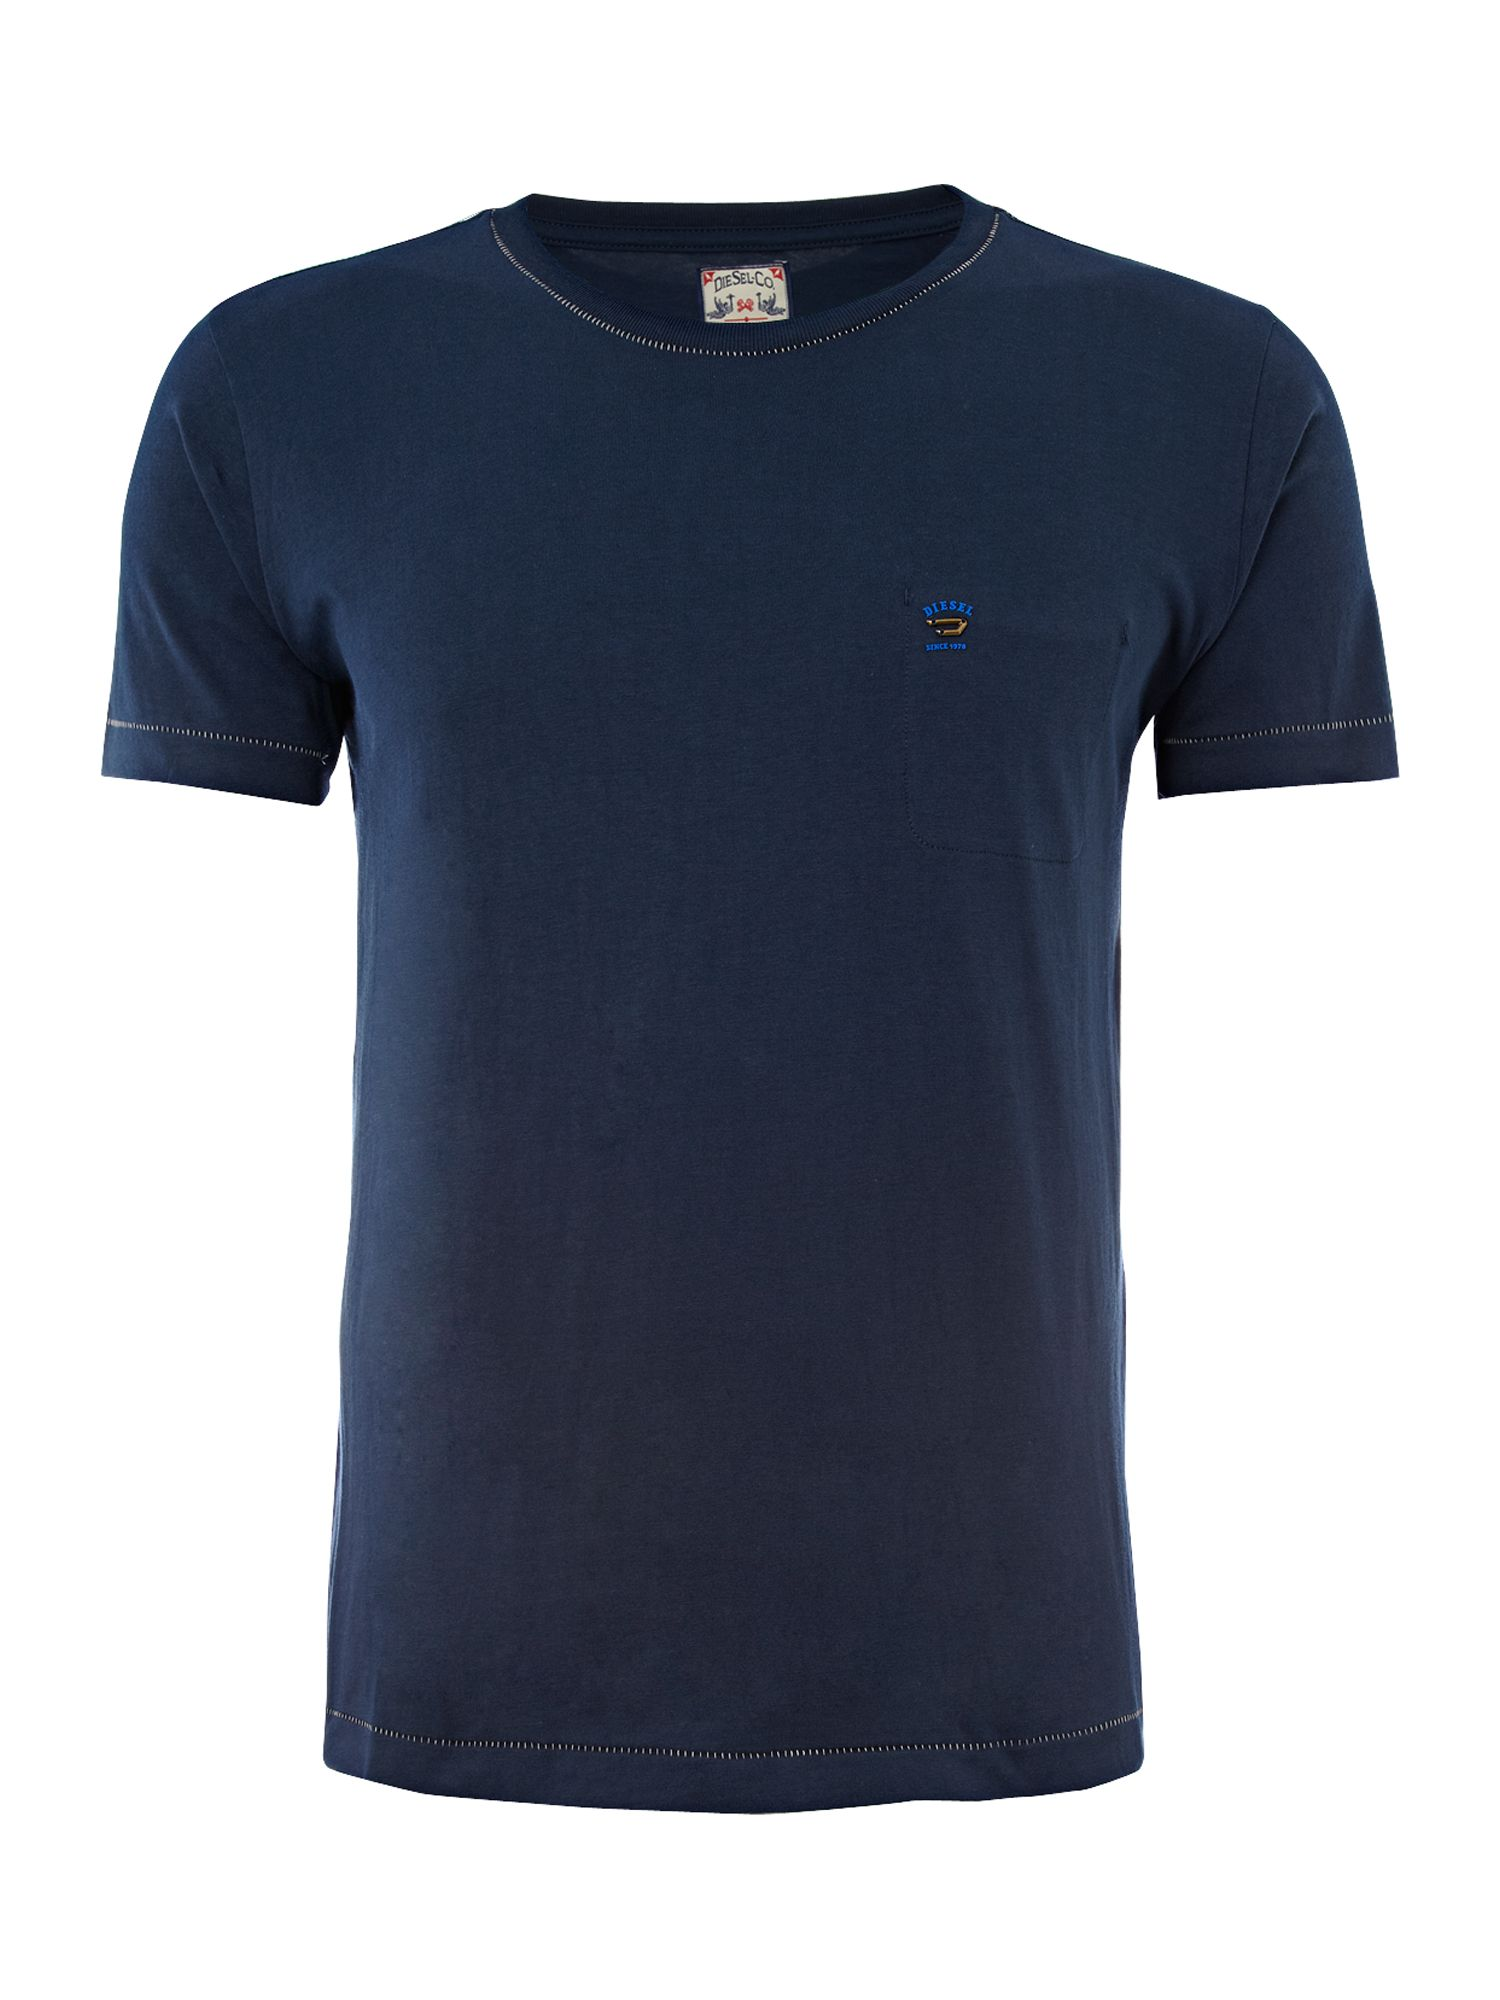 Diesel Mens Diesel Mens basic V-neck T-shirt, Navy product image